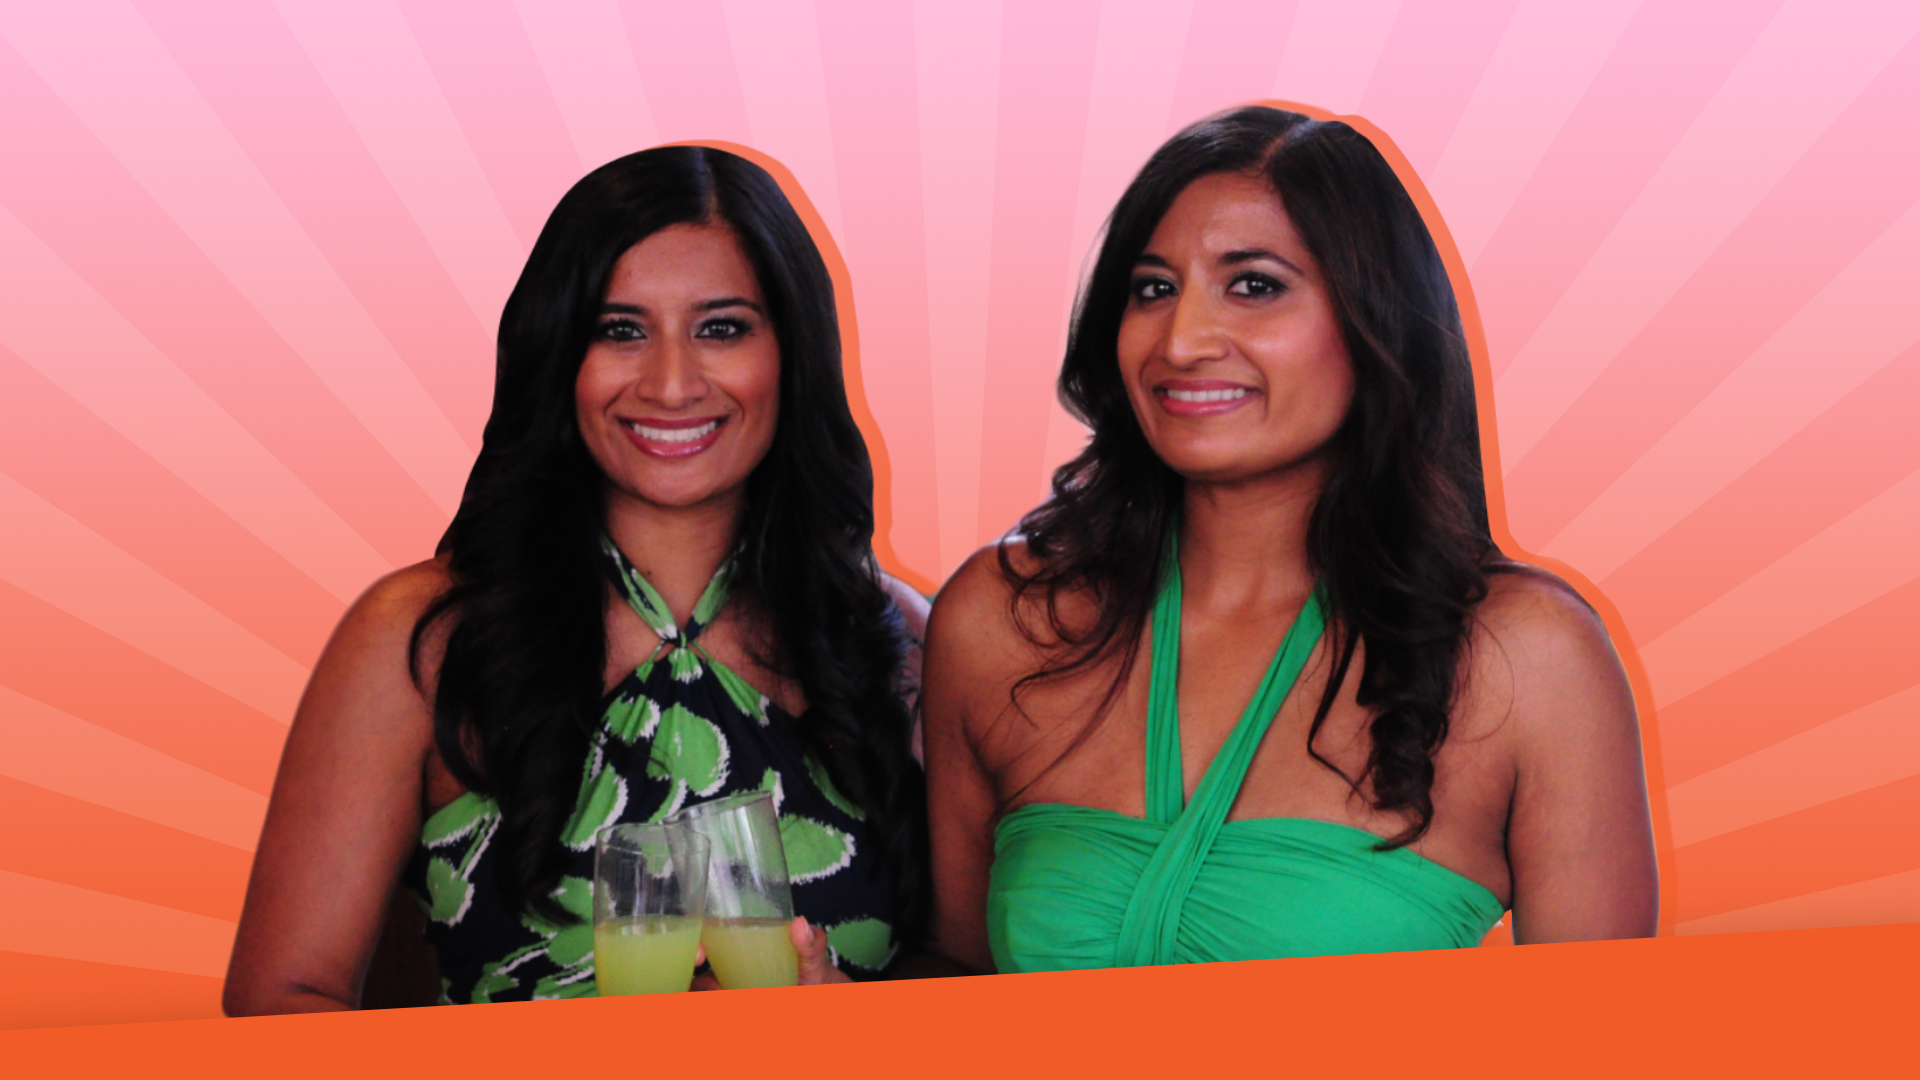 MEET SHE MEDIA PARTNER NETWORK'S Archana and Kanchana Pinnapureddy! - Nothing brings family and friends together like the holidays… and no one throws a party like the Twinspirational gals!